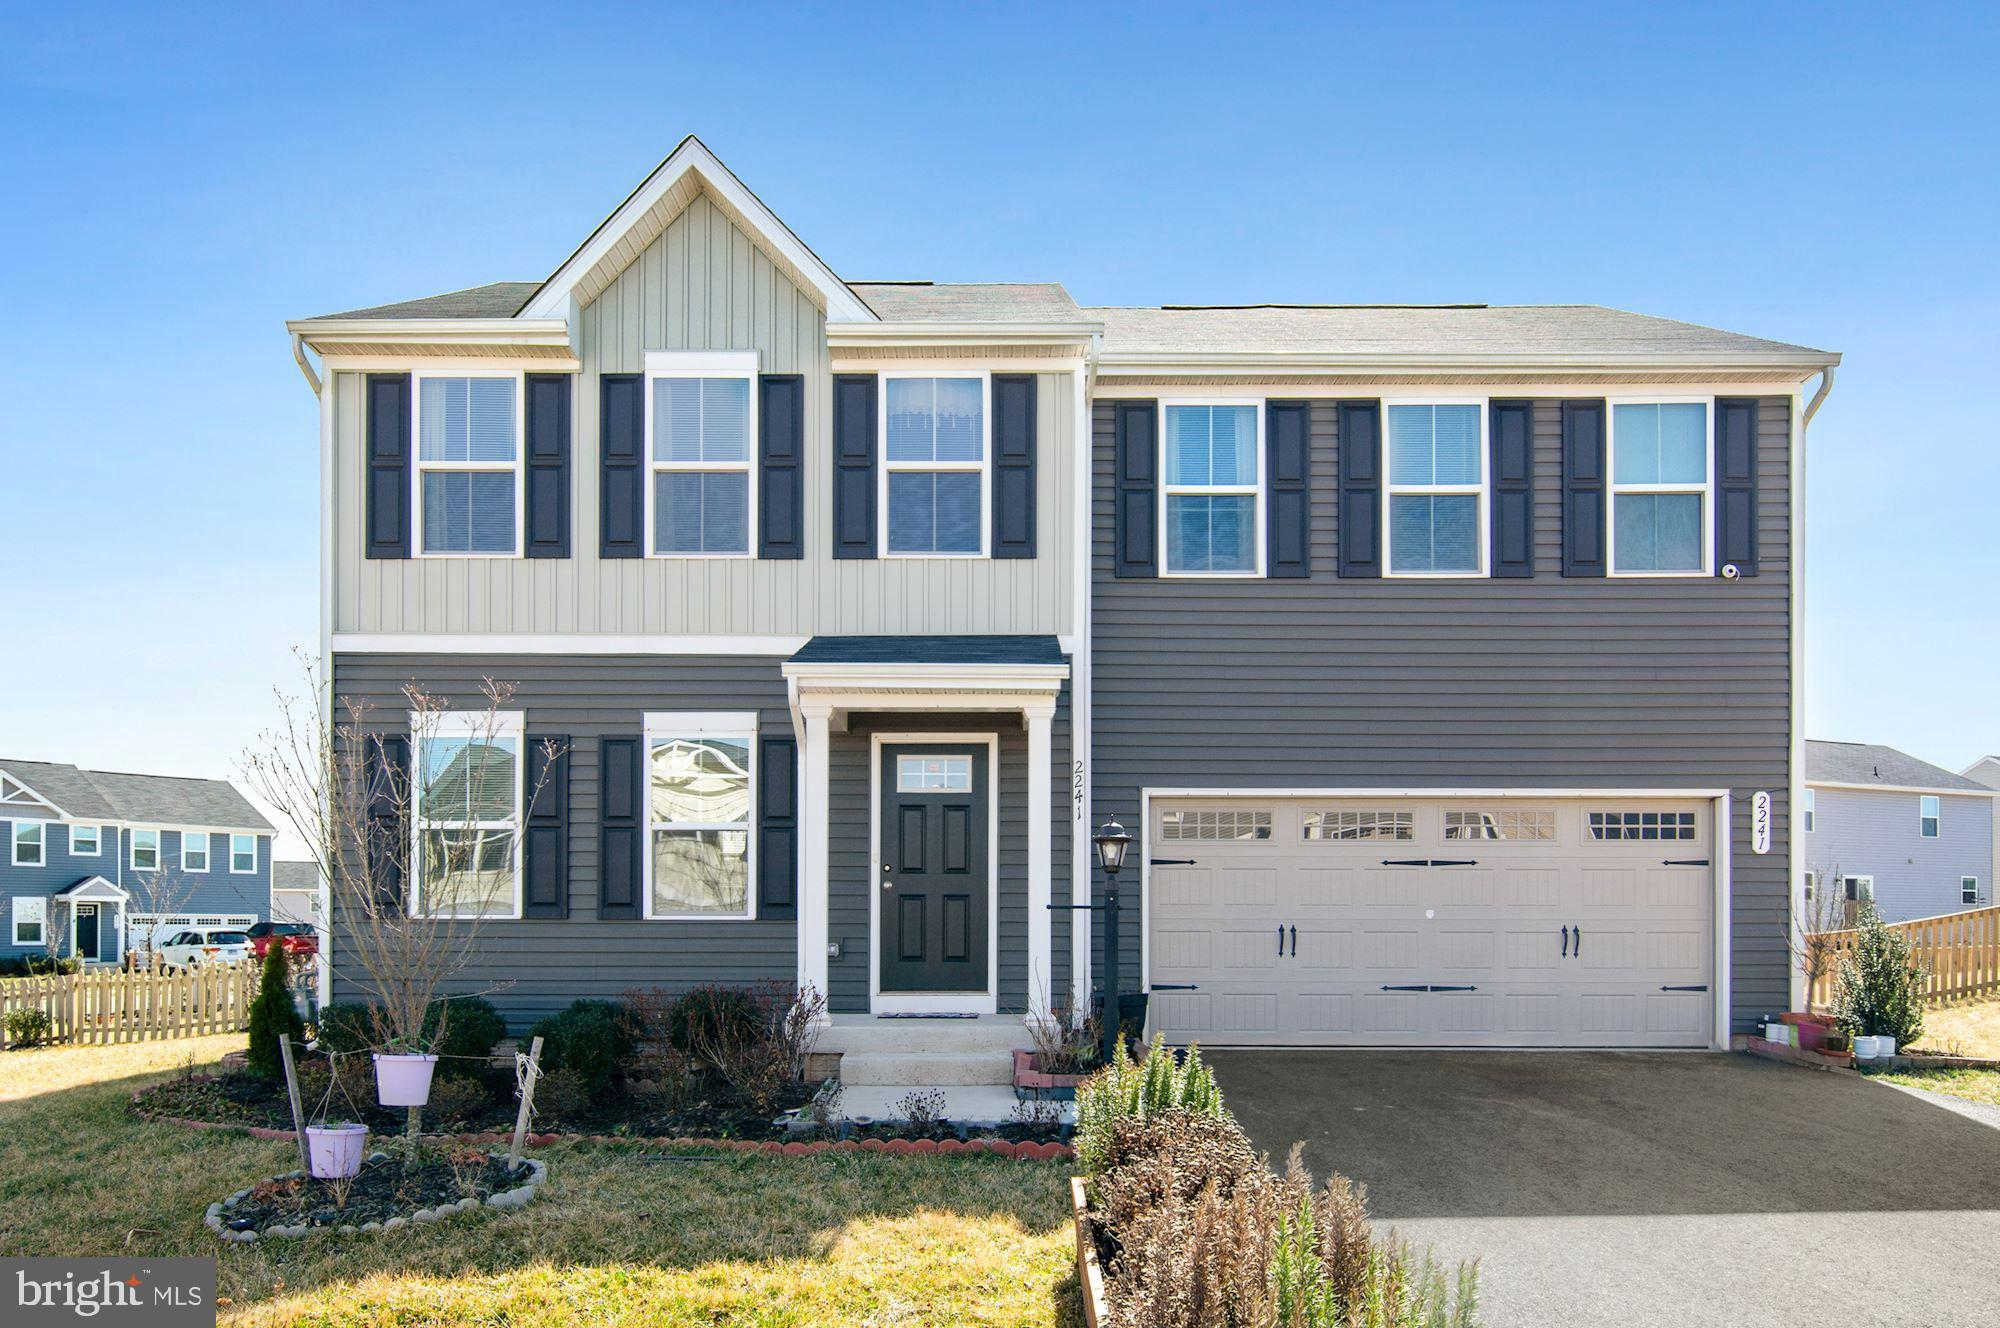 Welcome home to this amazing single family in Highpoint of Culpeper.  This home is on one of the largest corner lots in the community.  As you enter the home you will notice the amazing Open floor plan.  The main level provides a spacious family room, gormet kitchen with, formal dining room, and main level office.  Travel up the stairs to the primary bedroom with walk in closets and attached beautiful primary bathroom.  This floor is rounded off with 3 additional bedrooms, another full bathroom and bedroom level laundry.  The basement is ready for your finishes, with space for rec room and bathroom.  The rear of the home is fully fenced with a large deck spanning the back of the home.